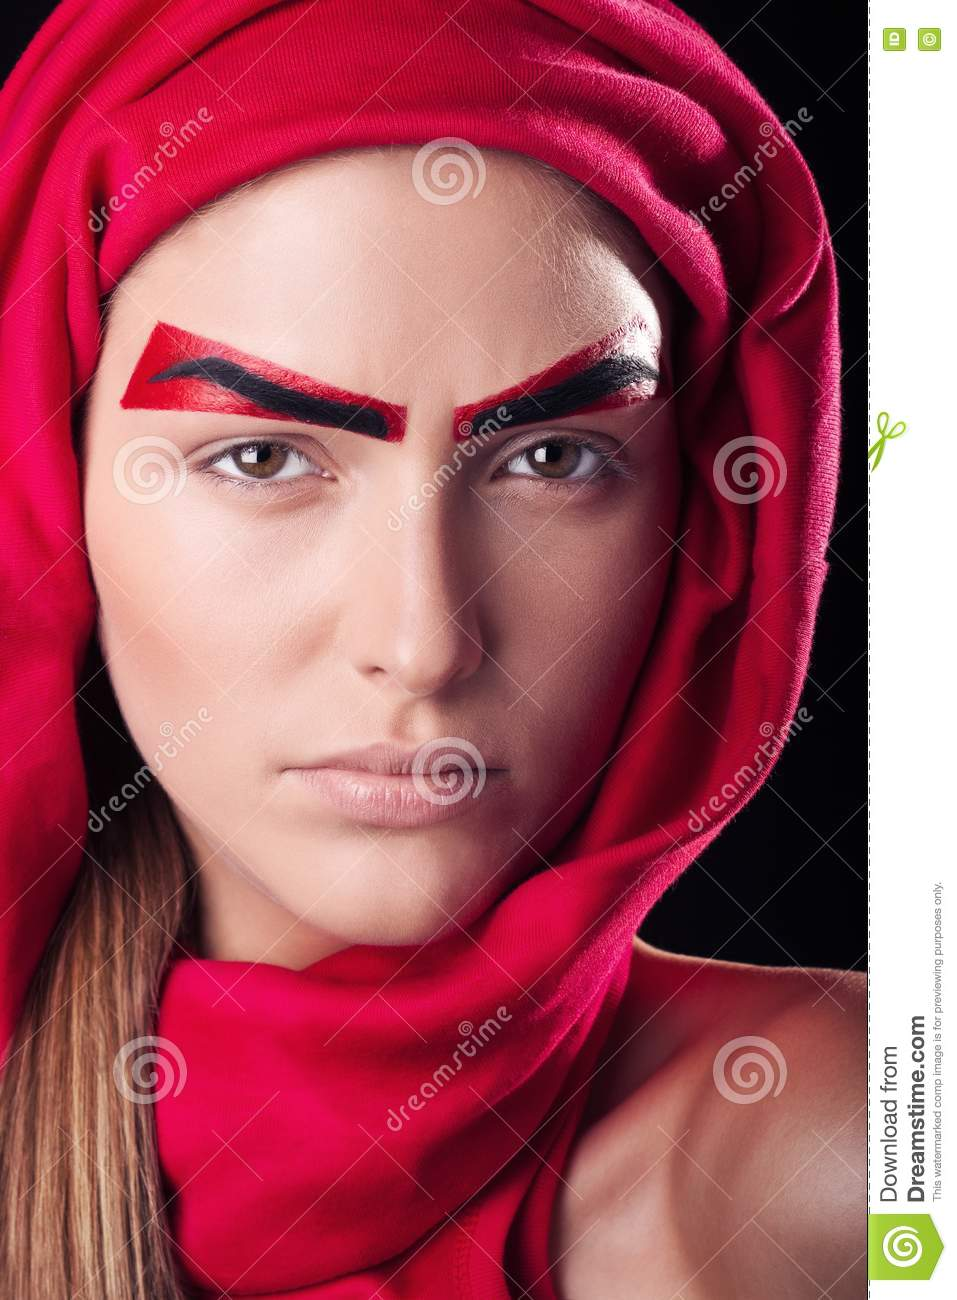 Eyebrow Styles: Red Eyebrows On The Person Of The Young And Beauti Royalty